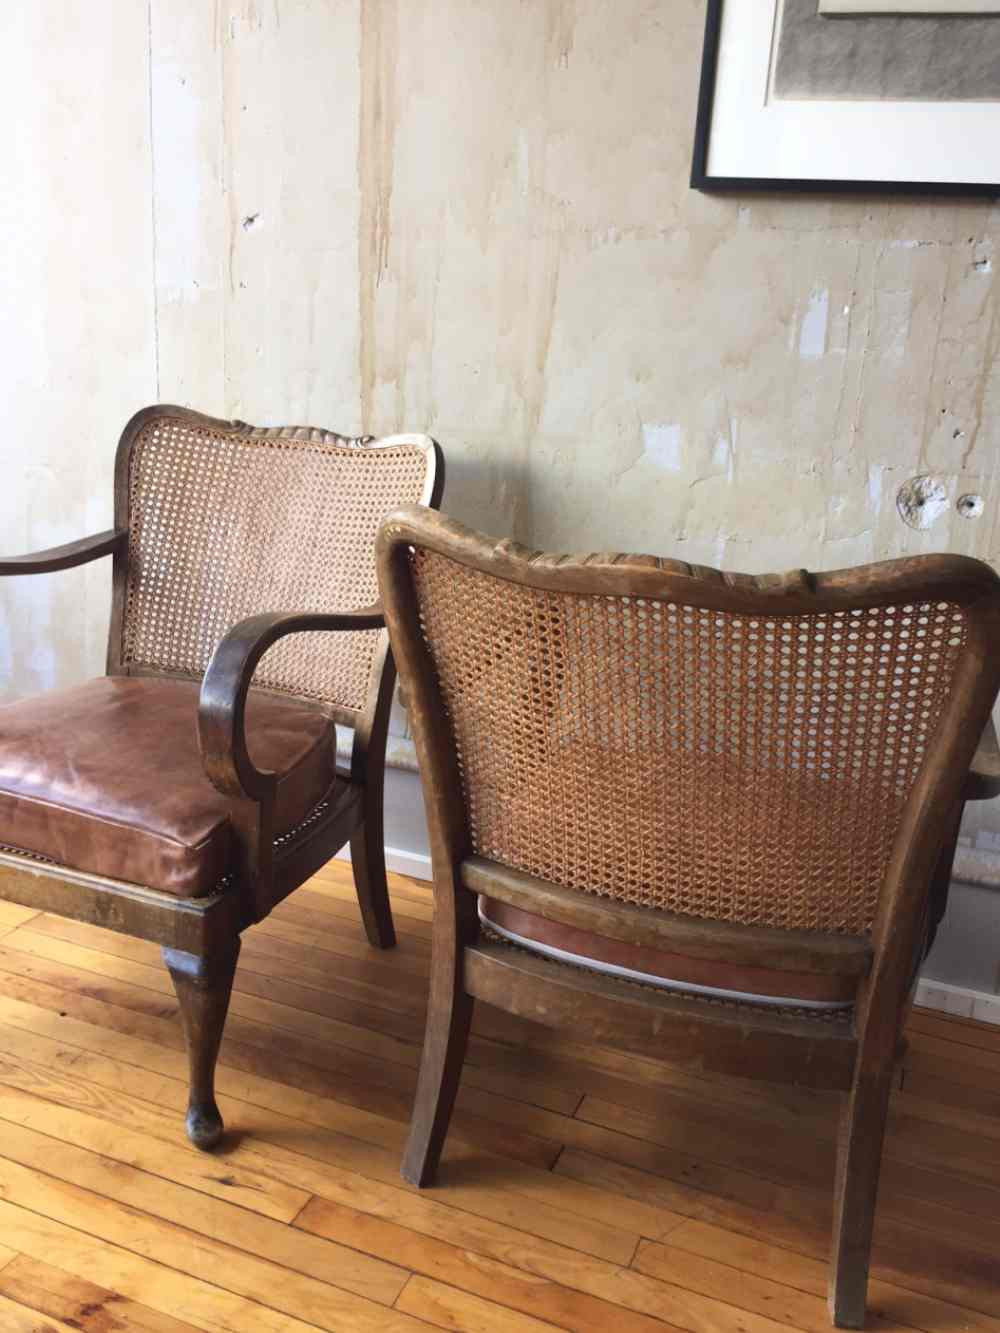 antique cane chairs value Vintage Caned Chairs | MERCATO Antiques antique cane chairs value